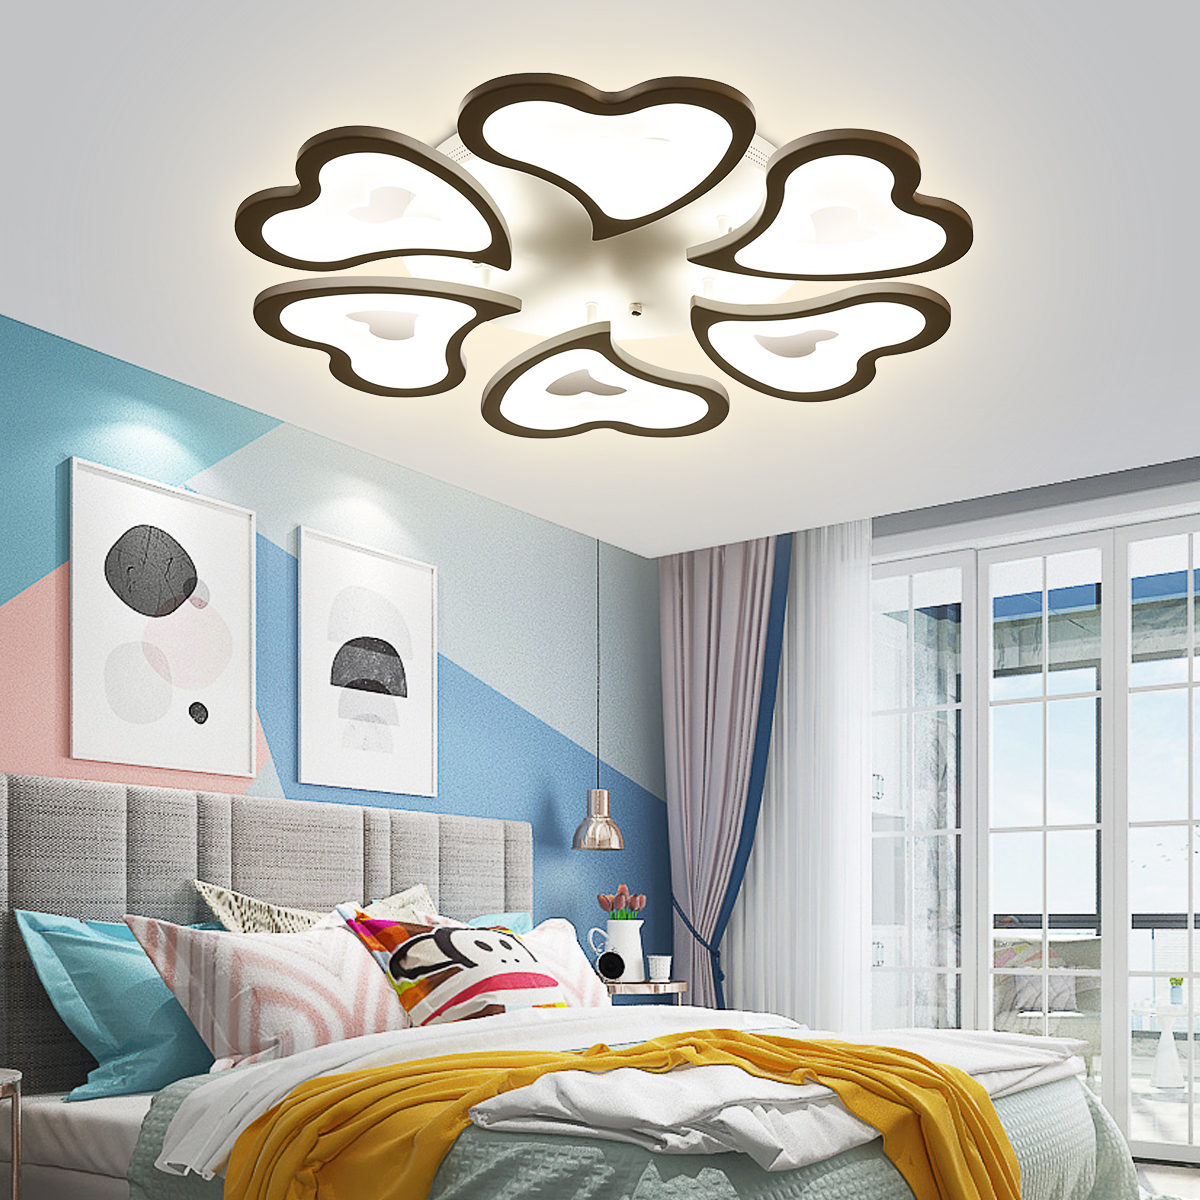 Dimmable Led Ceiling Light Modern Metal Acrylic With Remote Control Flush Mount Ceiling Lamp Living Room Flower Modeling Design Kitchen Hanging Lamp Bedroom Painted Finish Walmart Com Walmart Com